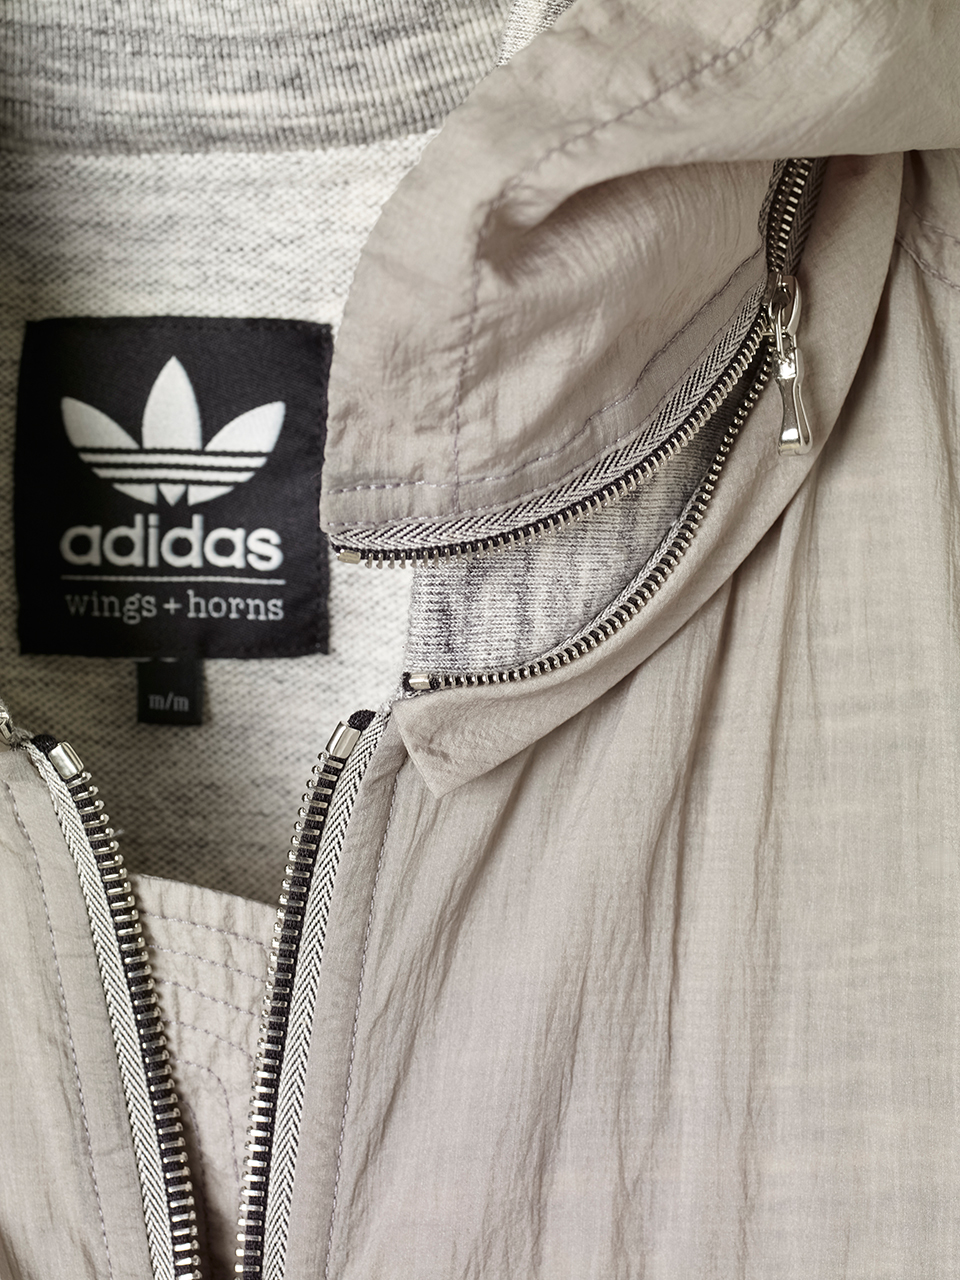 Adidas x Wings + Horns Team Bomber